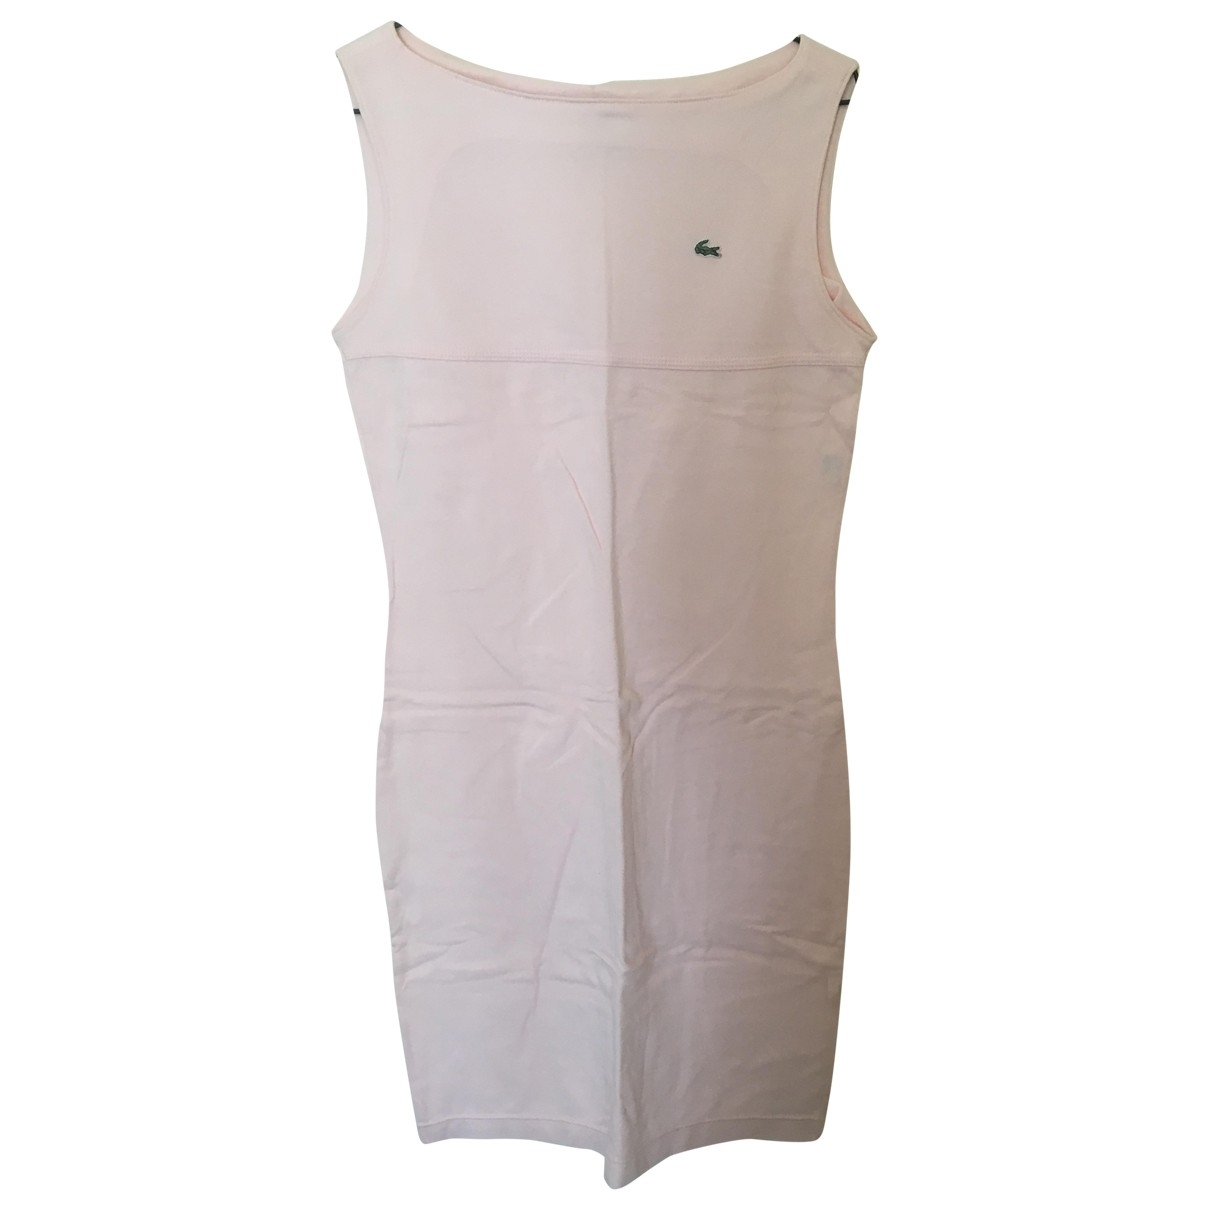 Lacoste \N Pink Cotton dress for Women 38 FR